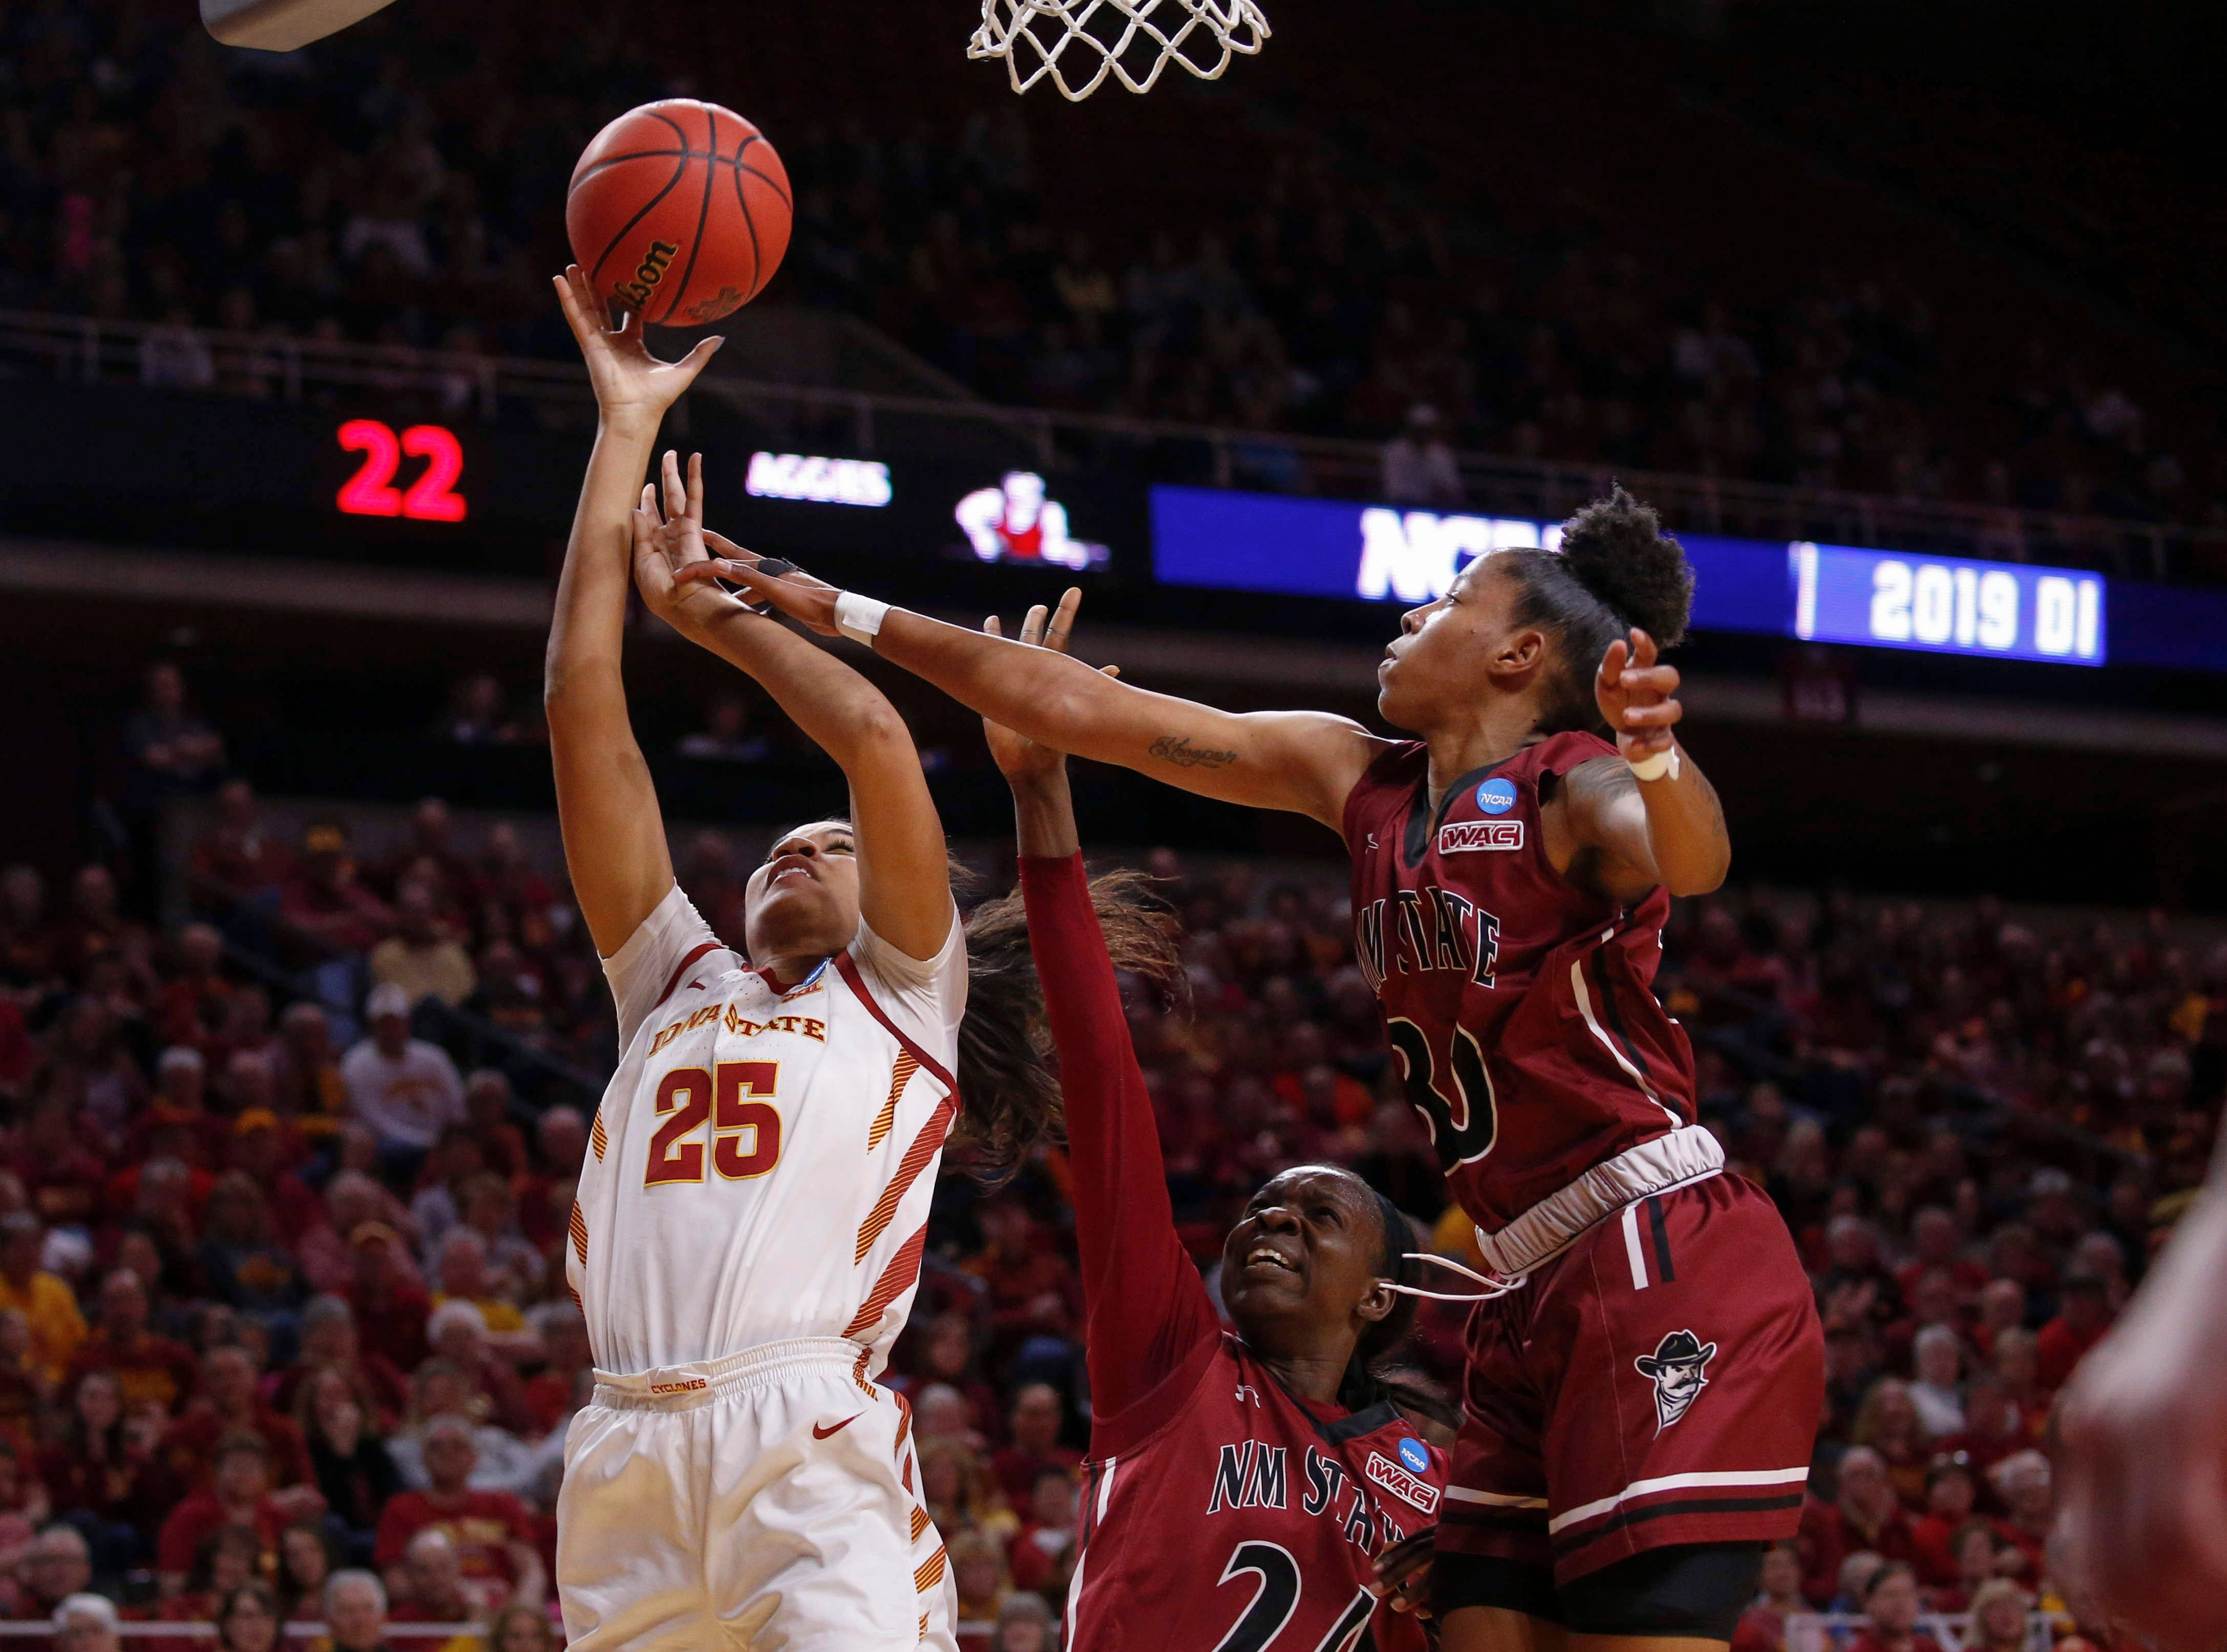 Iowa State sophomore Kristin Scott puts up a shot against New Mexico State on Saturday, March 23, 2019, at Hilton Coliseum in Ames.